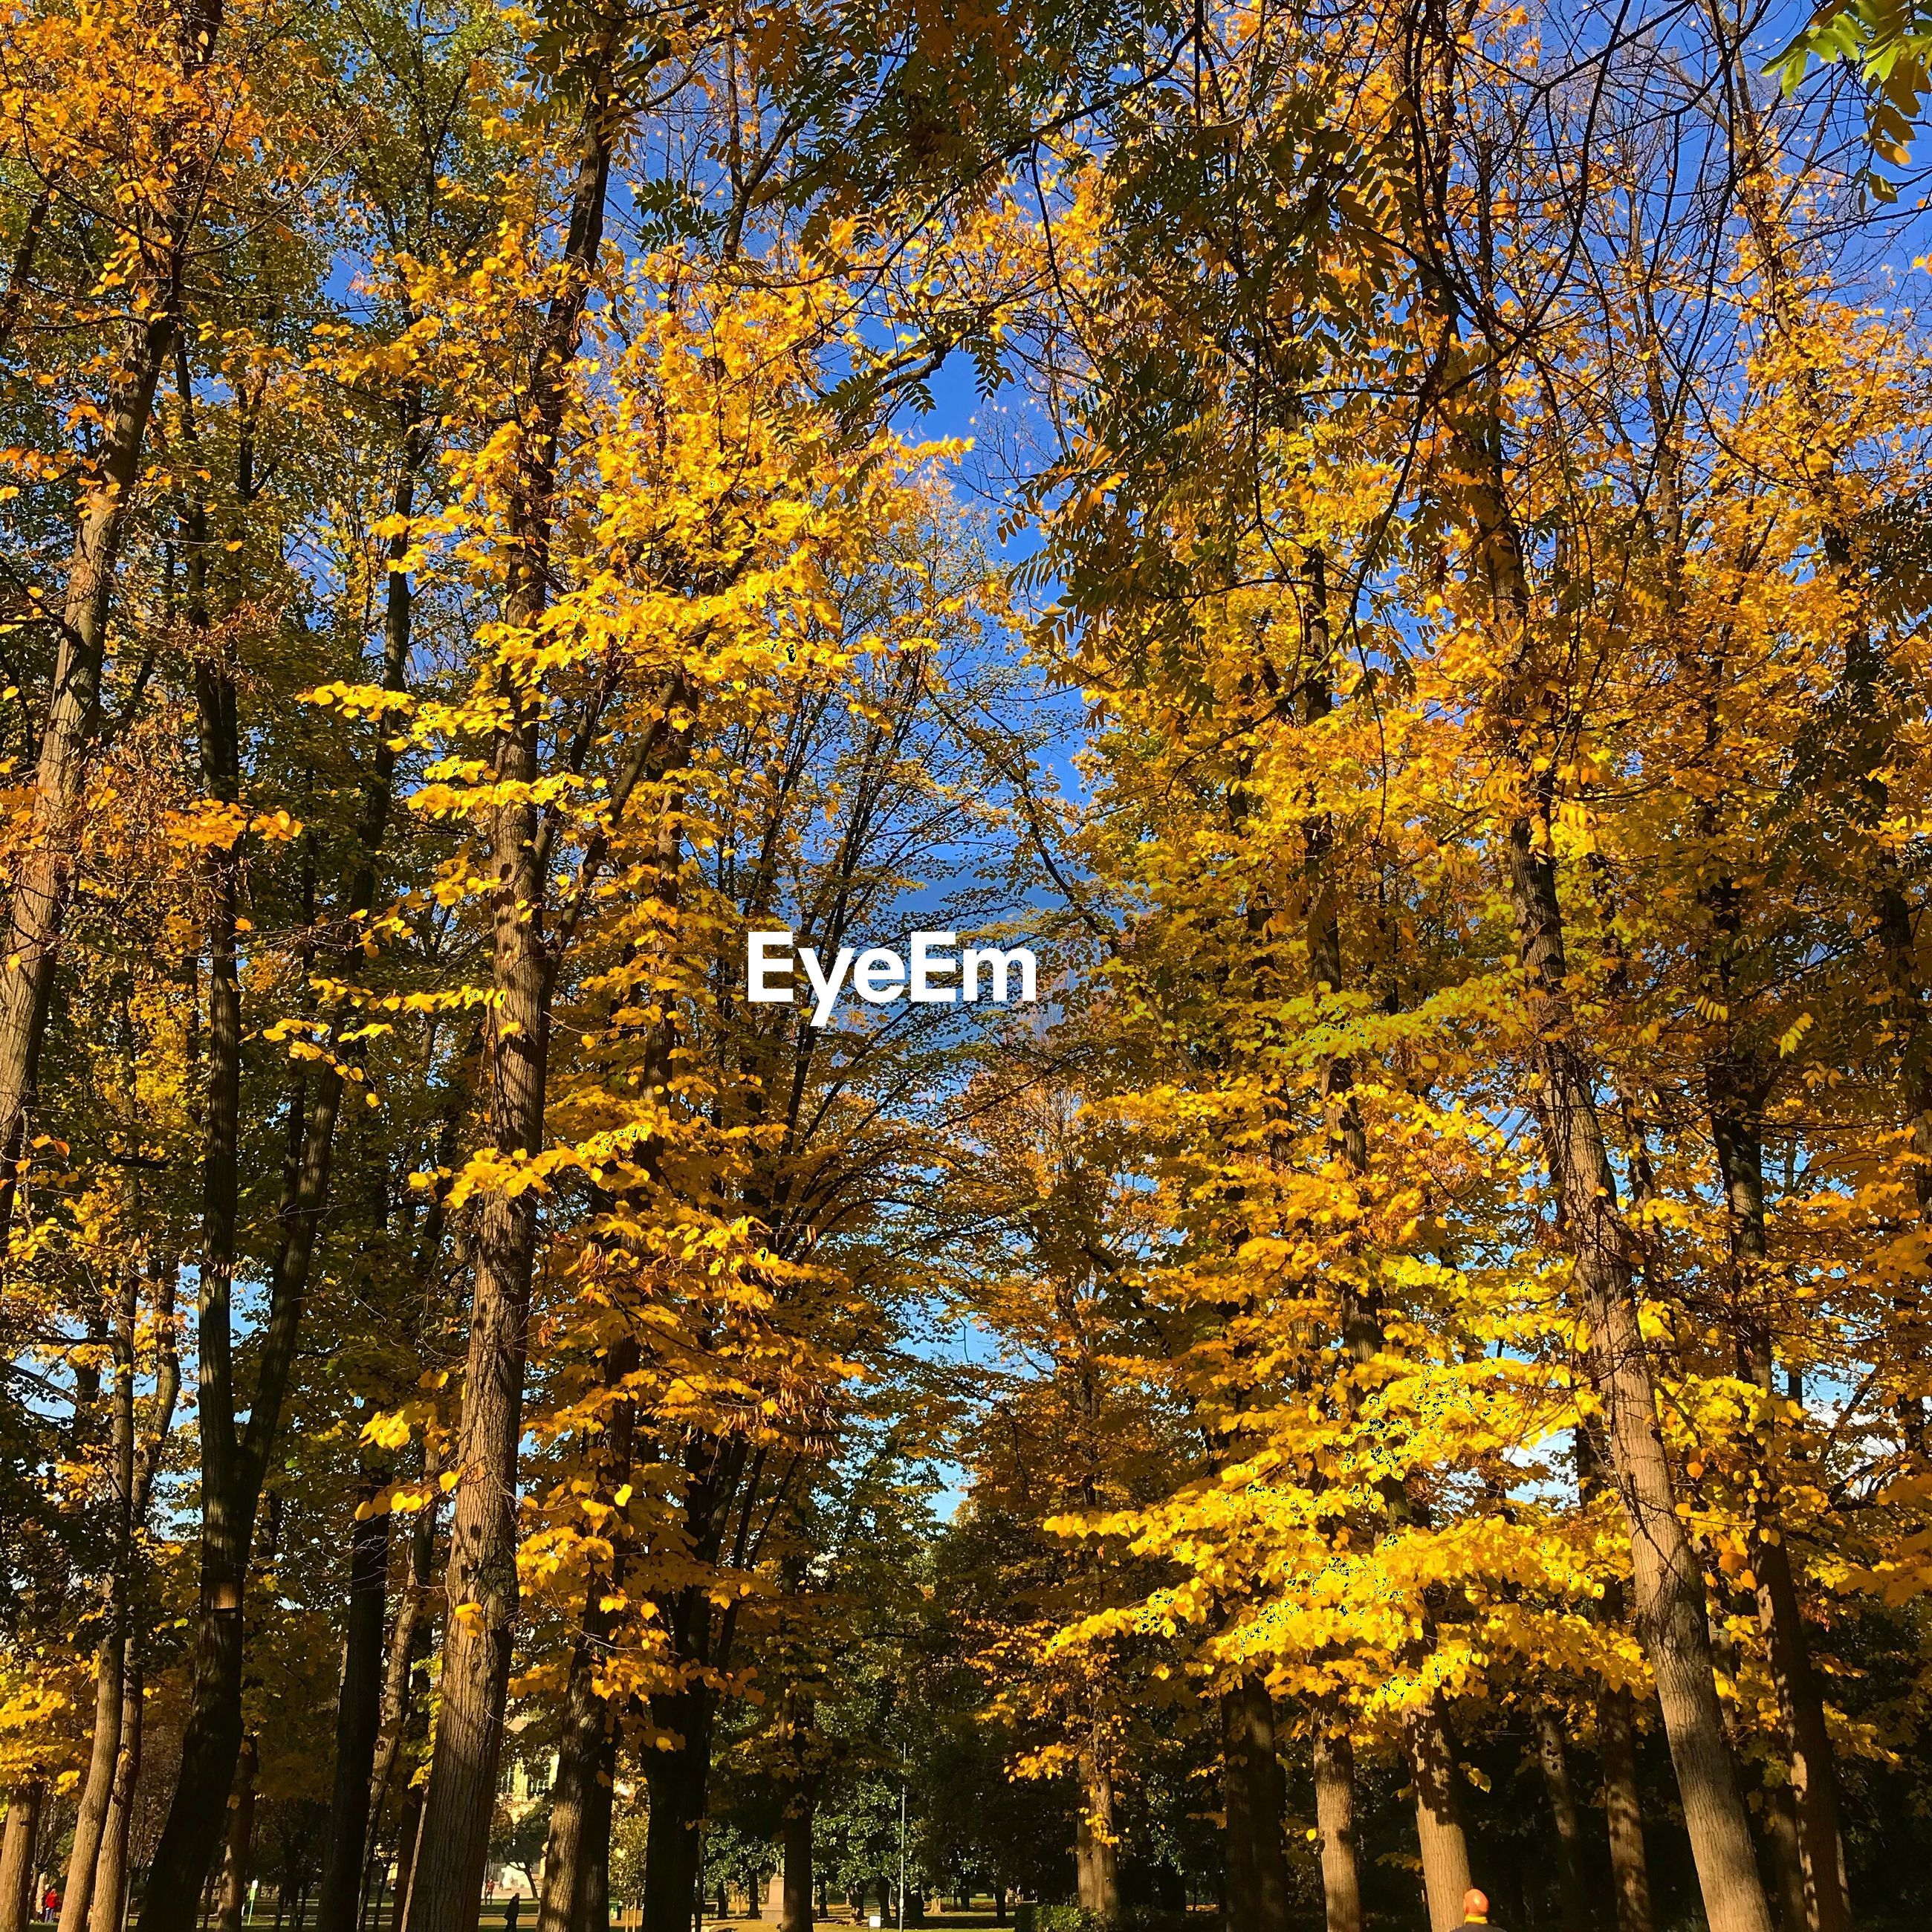 LOW ANGLE VIEW OF TREE IN AUTUMN FOREST